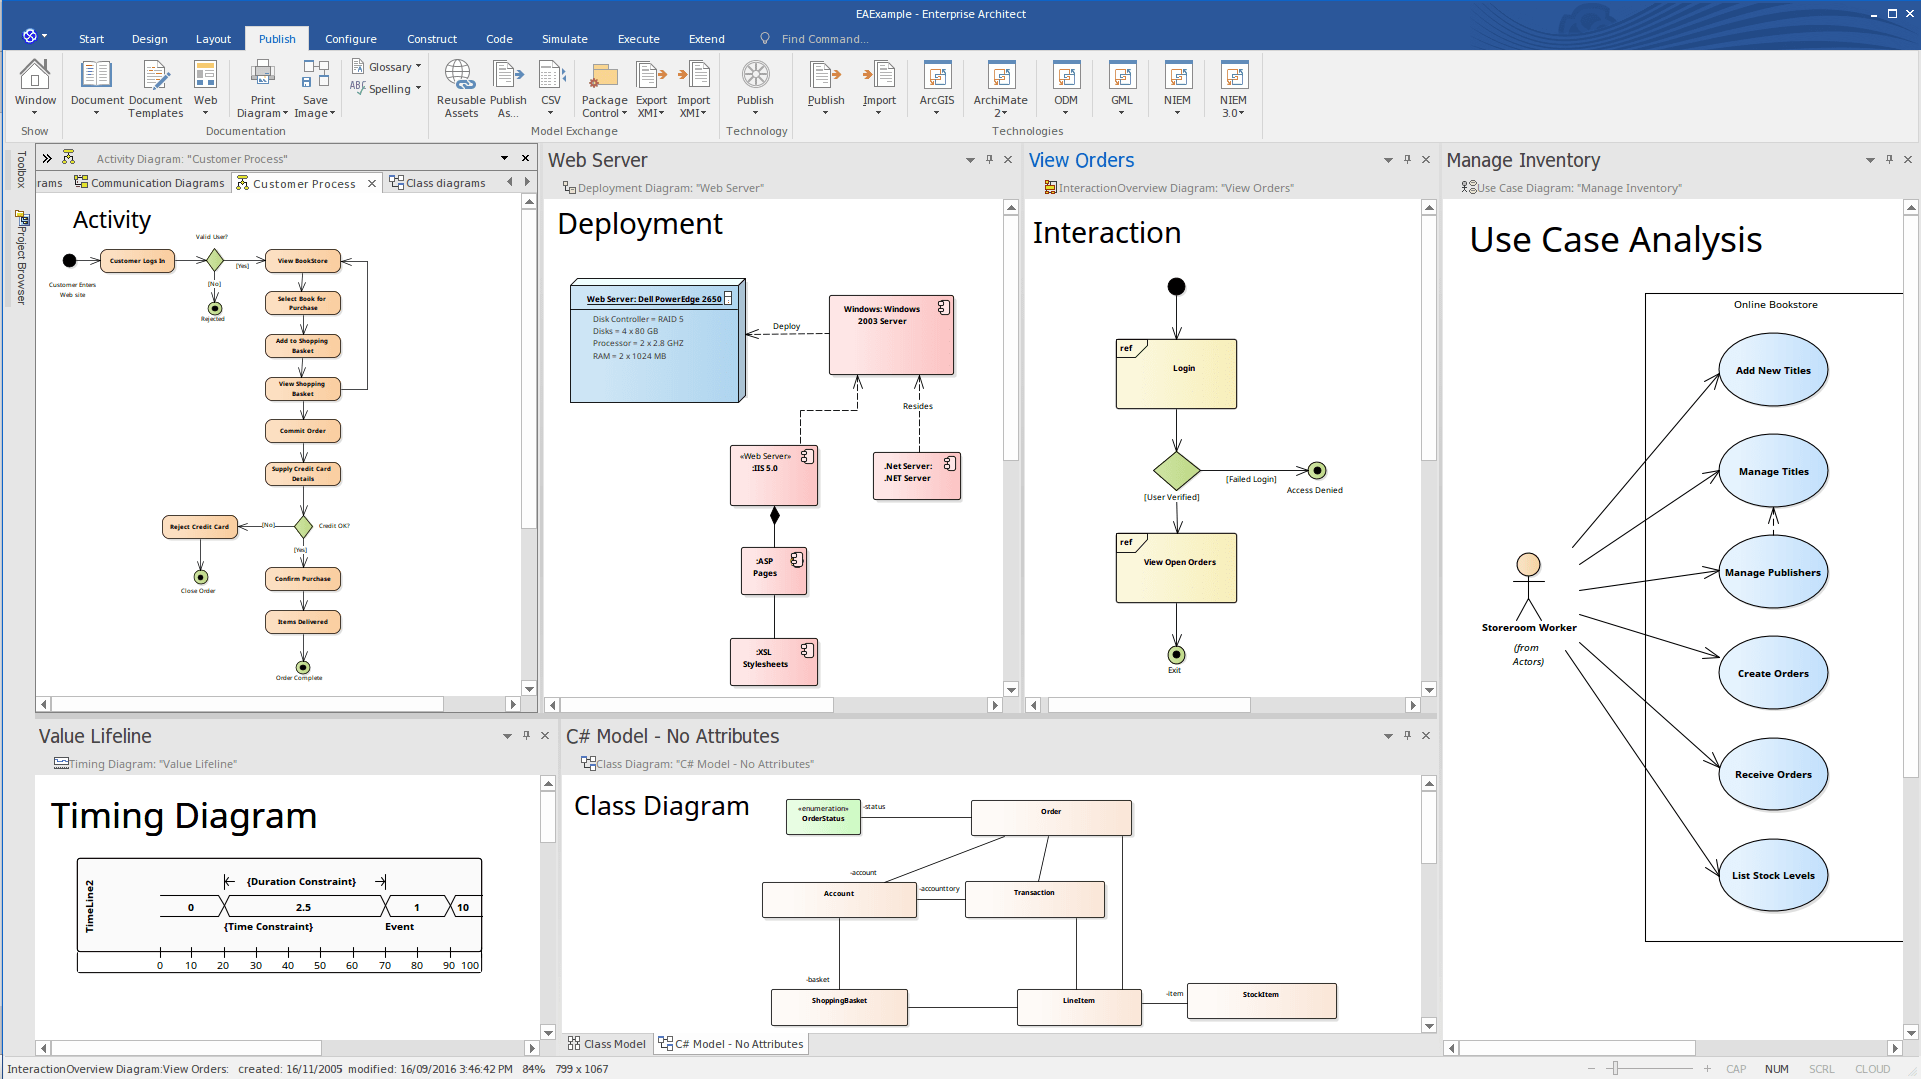 avaya architecture diagram 2003 gsxr 600 wiring uml tools for software development and modelling